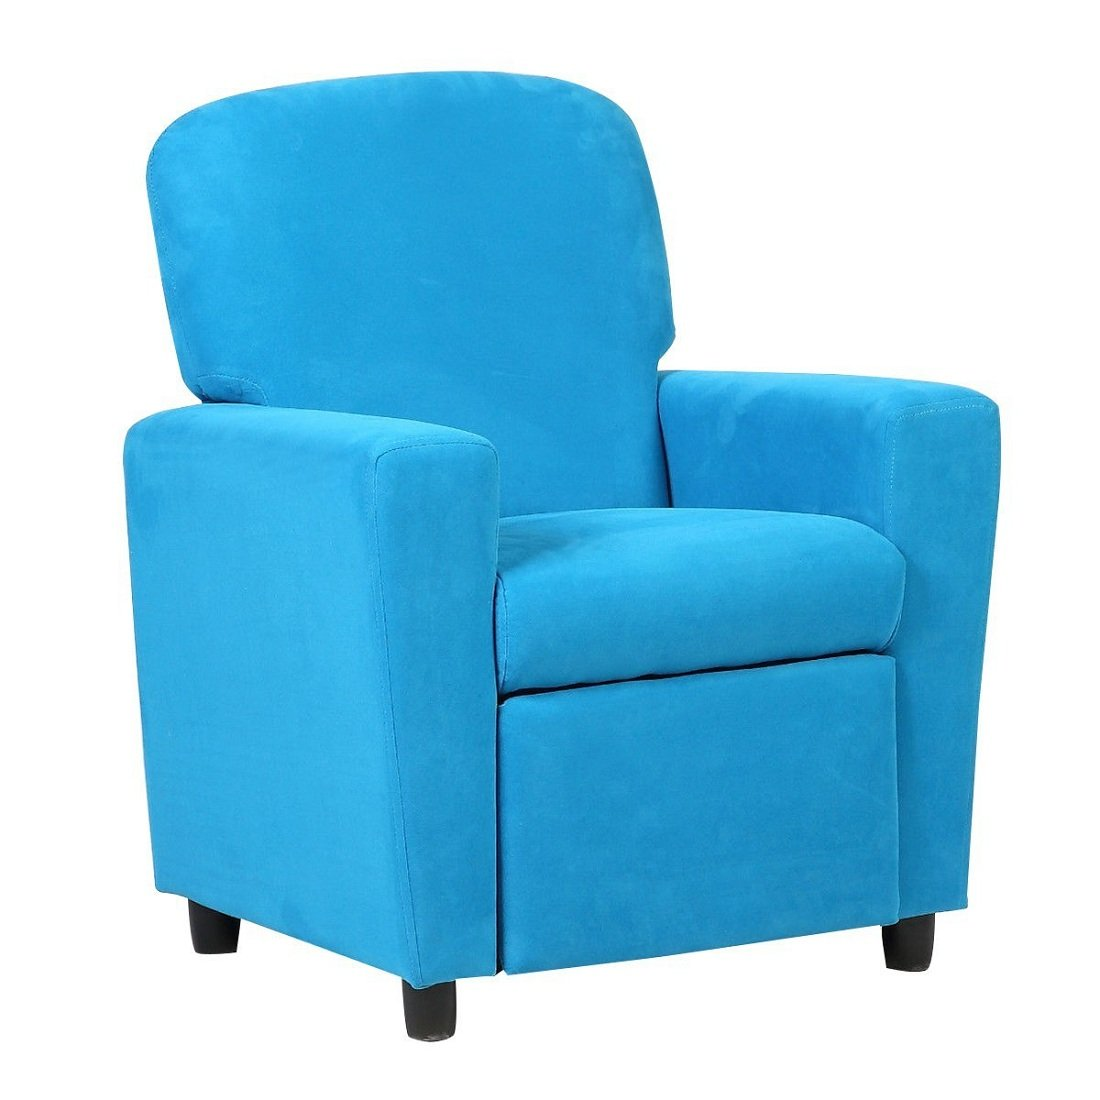 Kids Sofa Armrest Chair Contemporary Blue Microfiber Kids Recliner Children Living Room Toddler Furniture